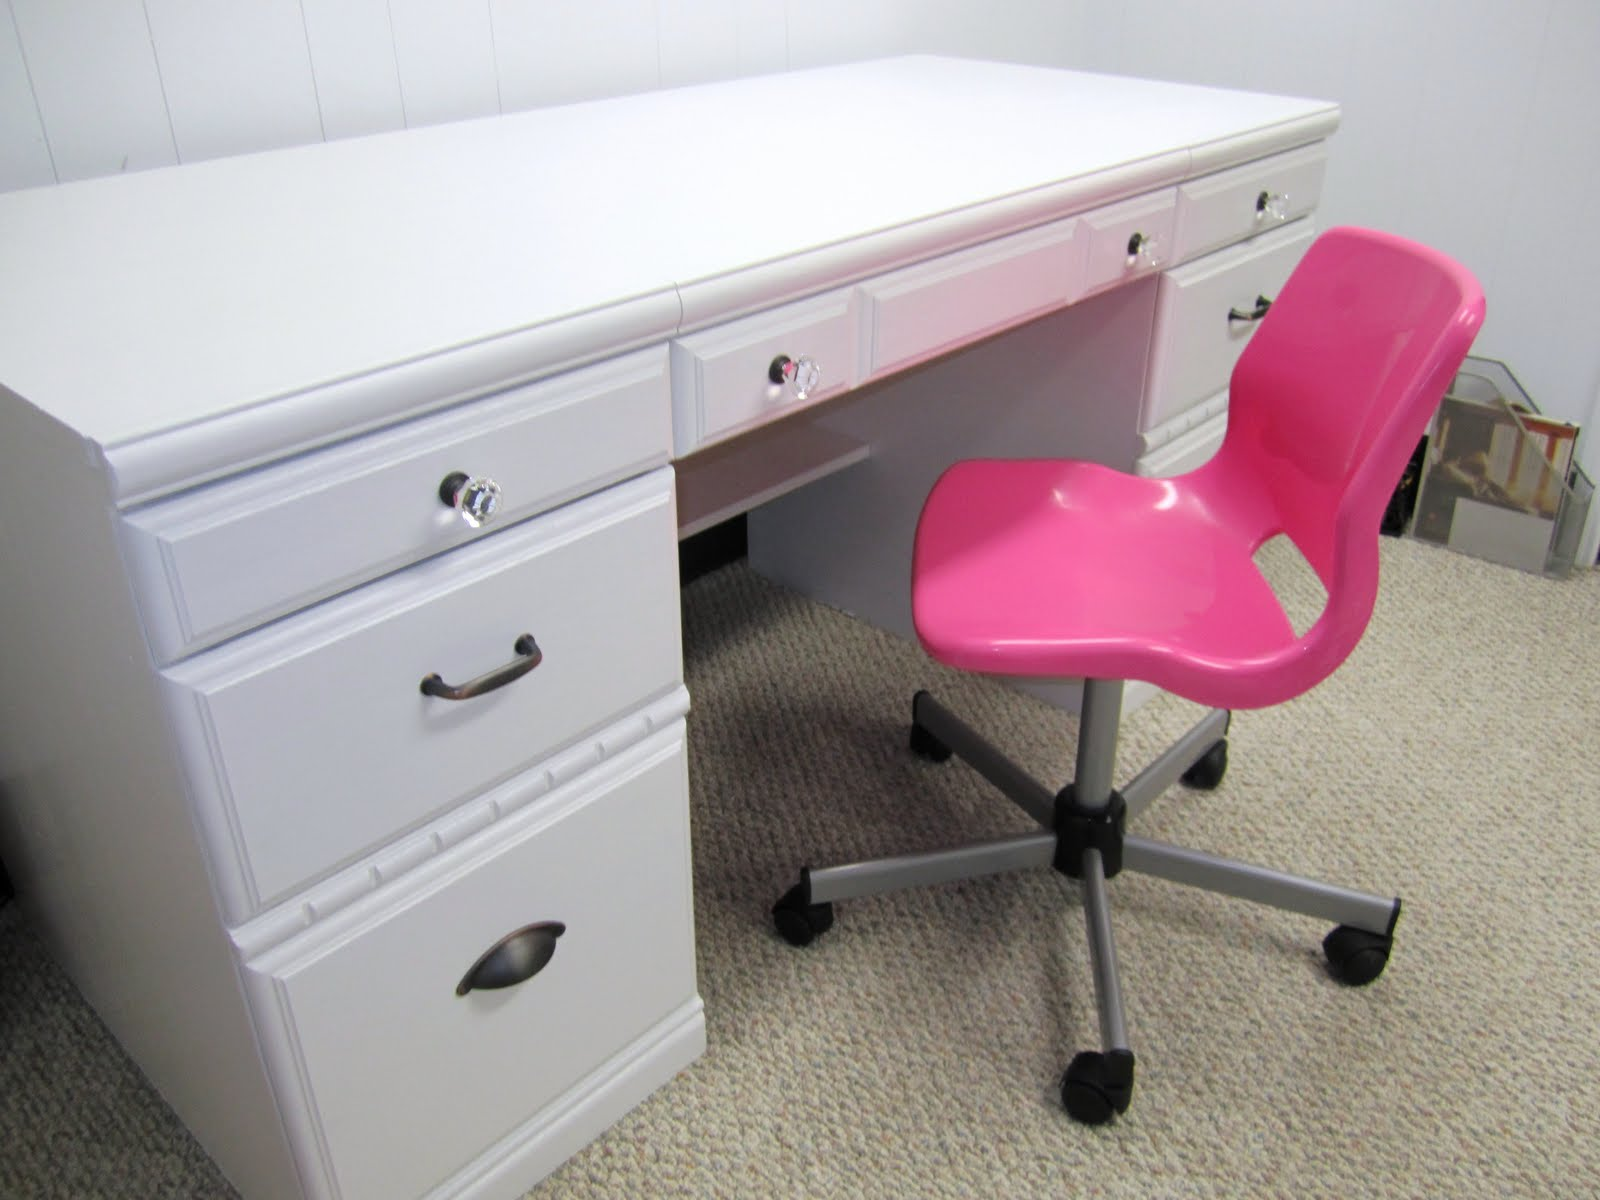 Desk Chair Pink Table Chairs Outdoor 6k Pics Http 4 Bp Blogspot Com 3zicibyopaq Tjgeol6pc9i My Super Cool Hot